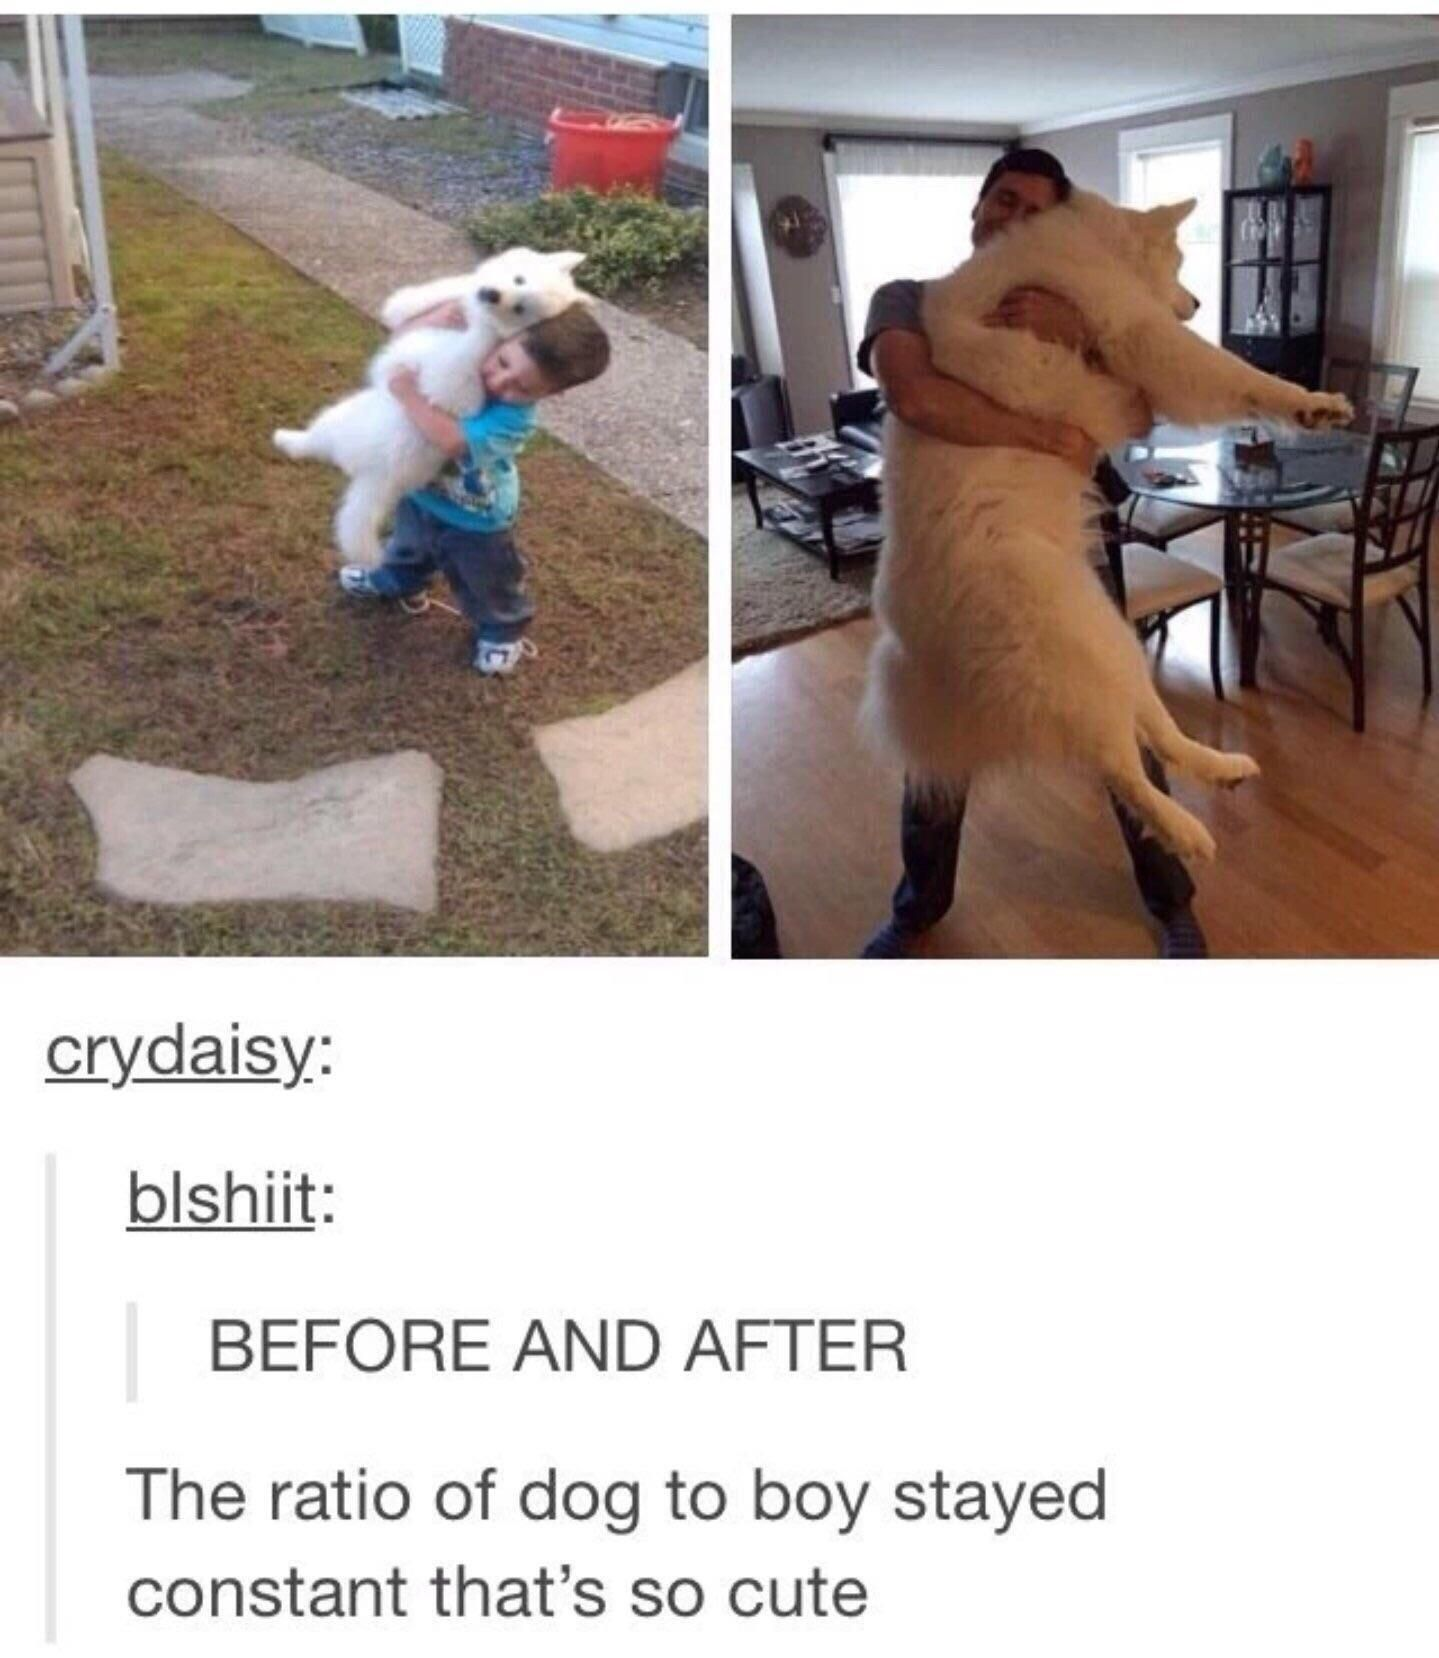 Dog To Boy Ratio Stays The Same With Images Cute Funny Animals